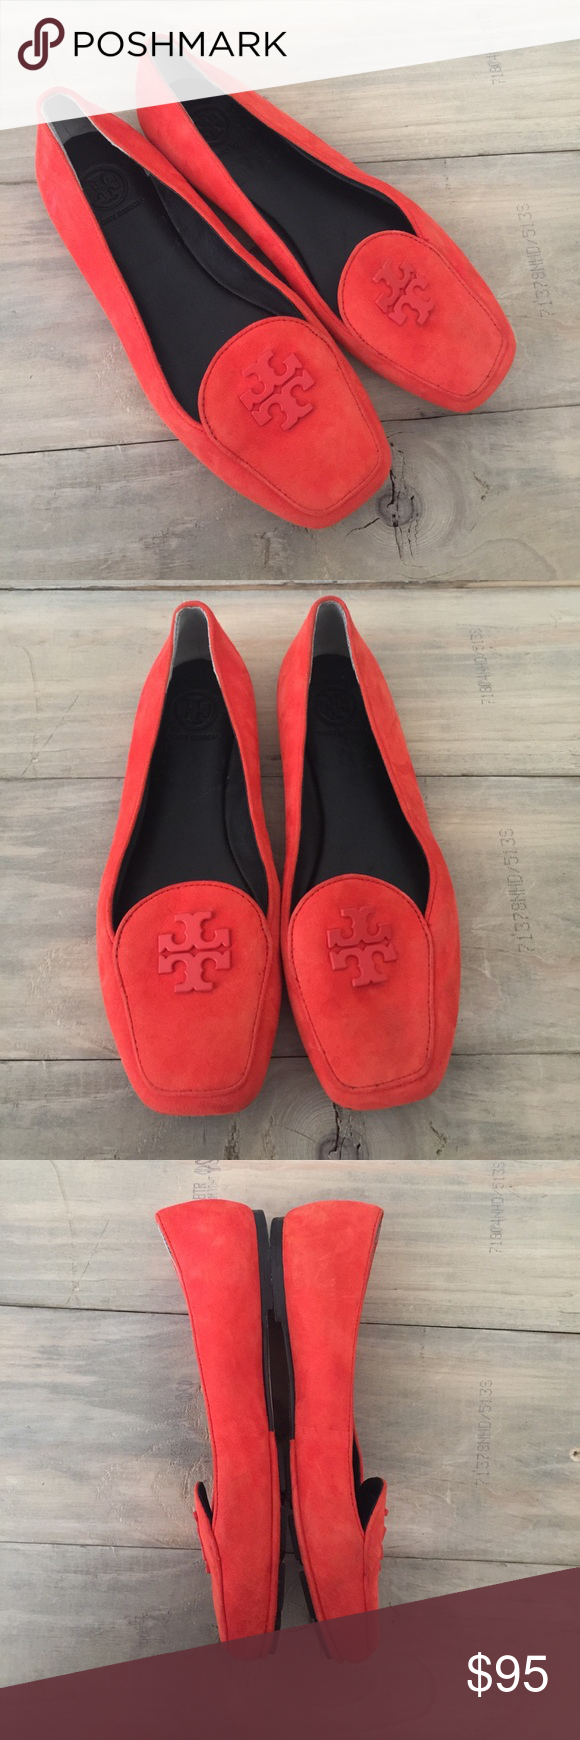 57373b67c480ac Tory Burch fitz poppy red suede loafer logo flats Excellent used condition